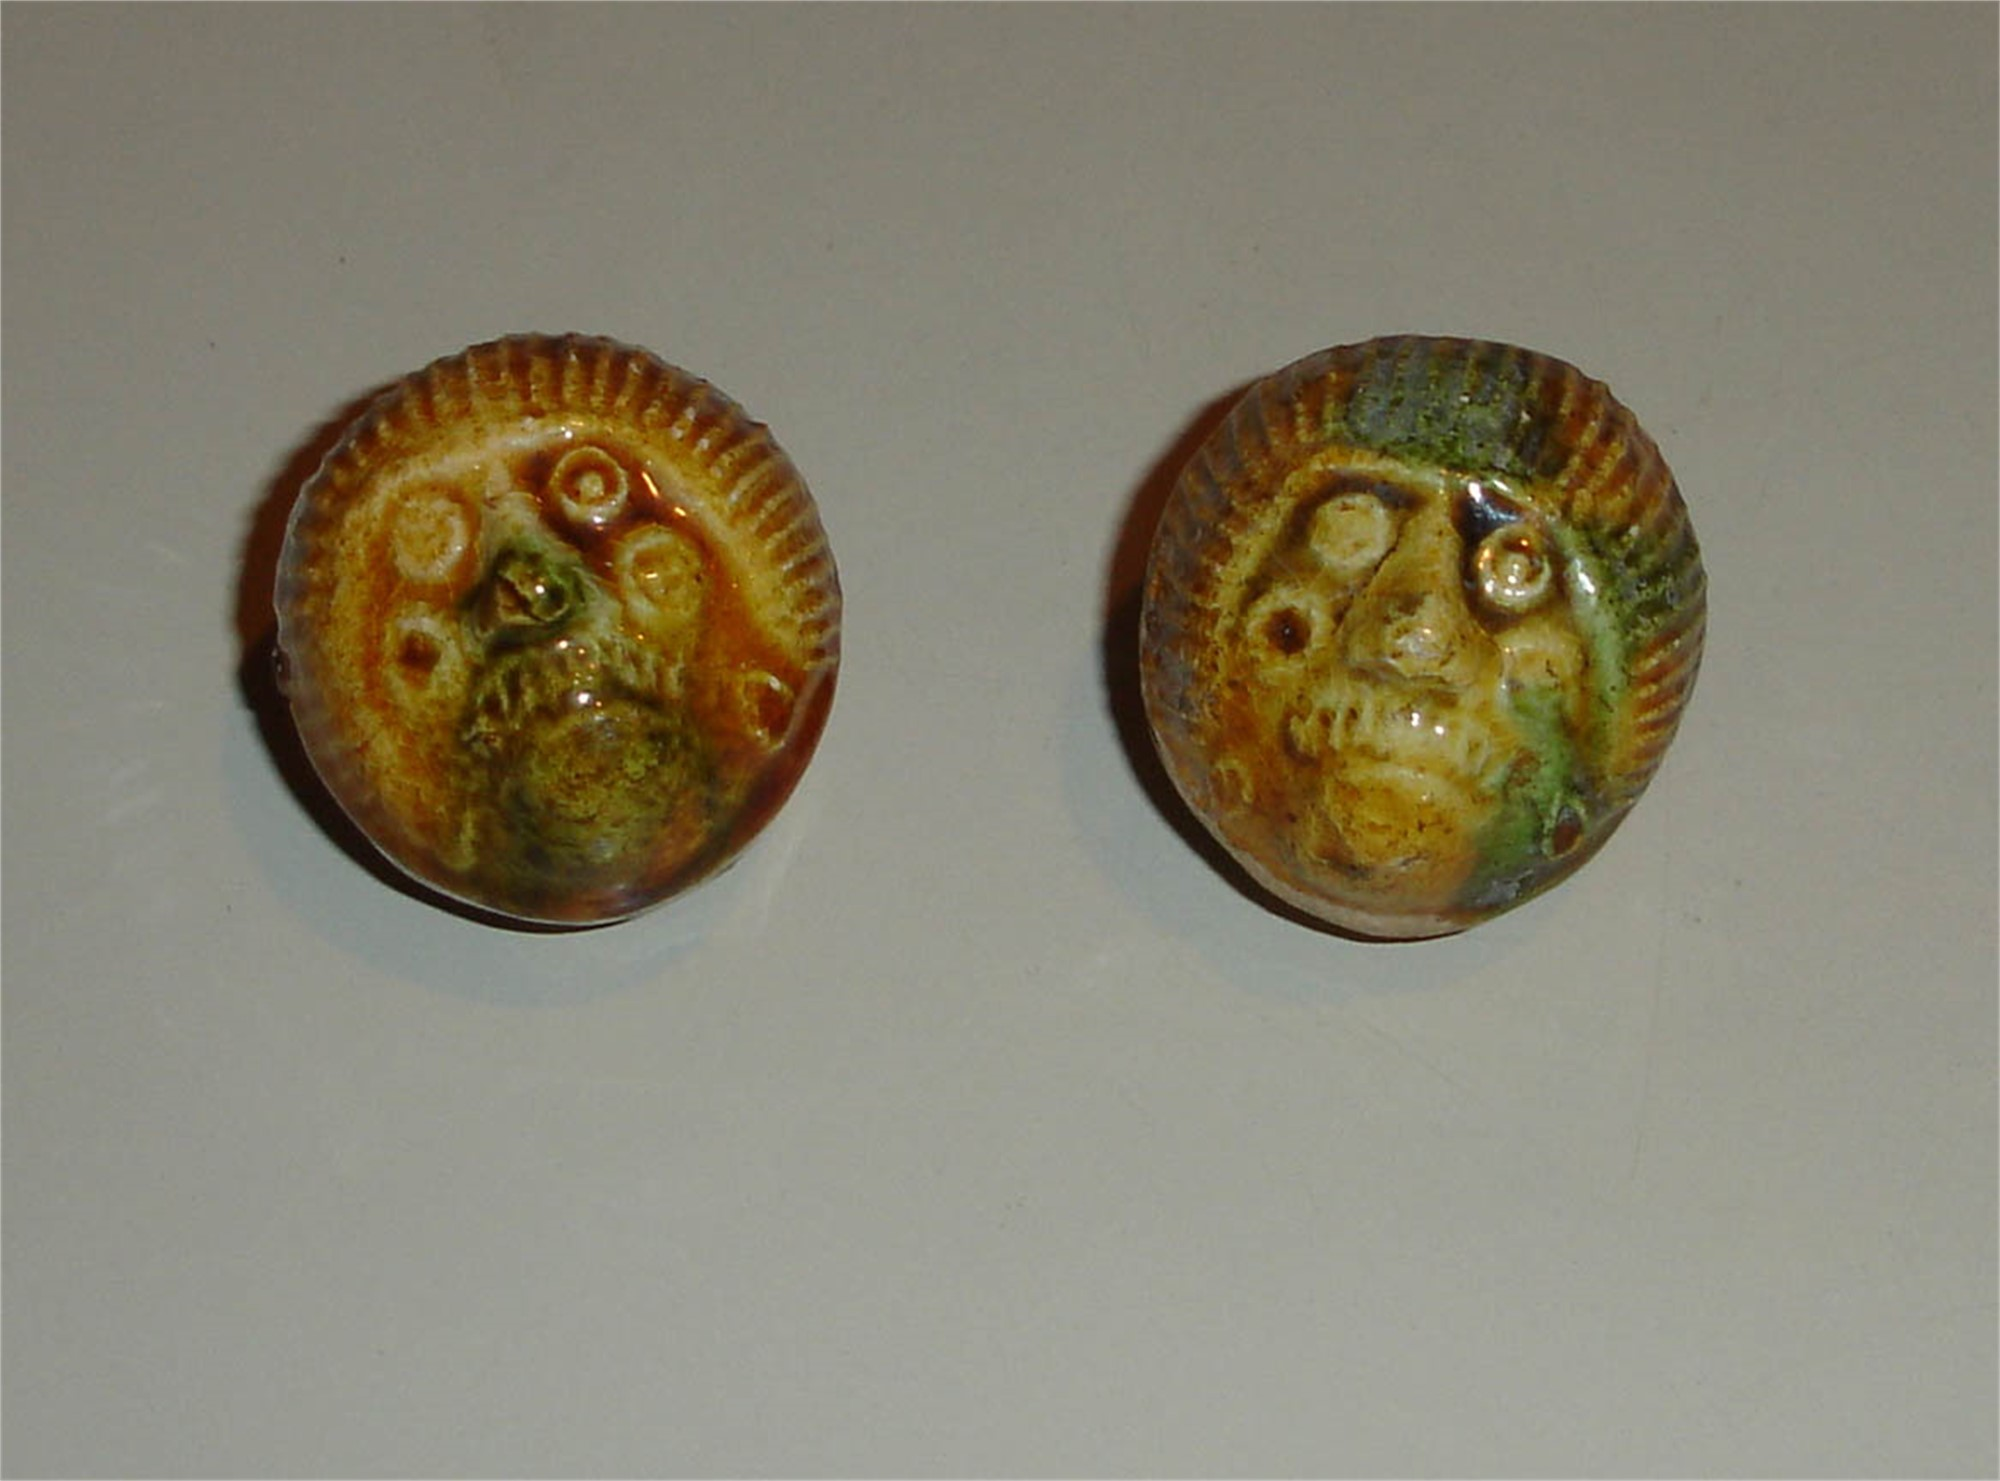 PAIR OF GLAZED POTTERY FIGURAL WHISTLES